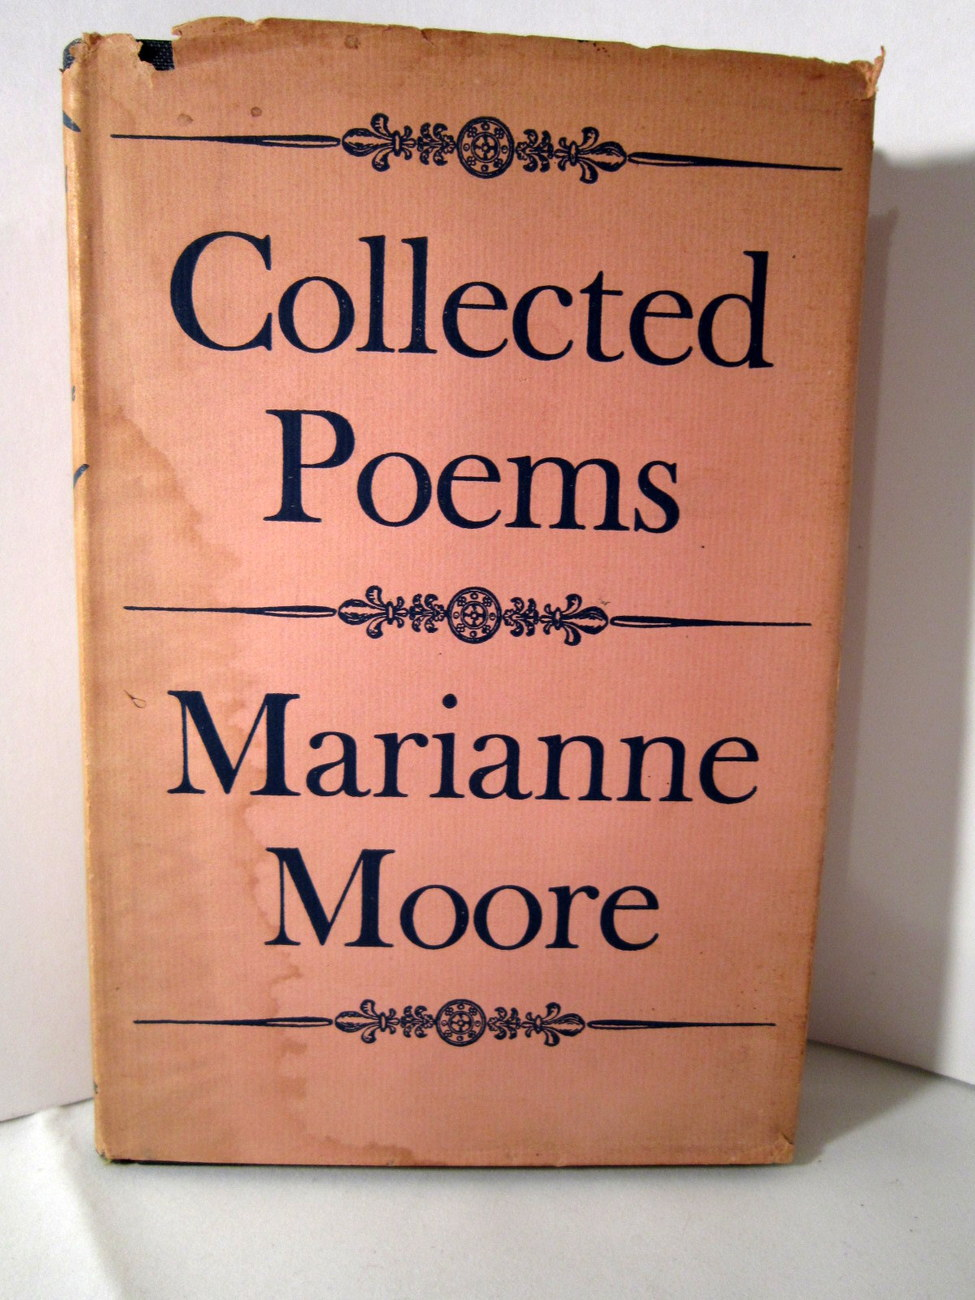 Collected Poems 1952 Marianne Moore, her 1930s and 1940s Poetry